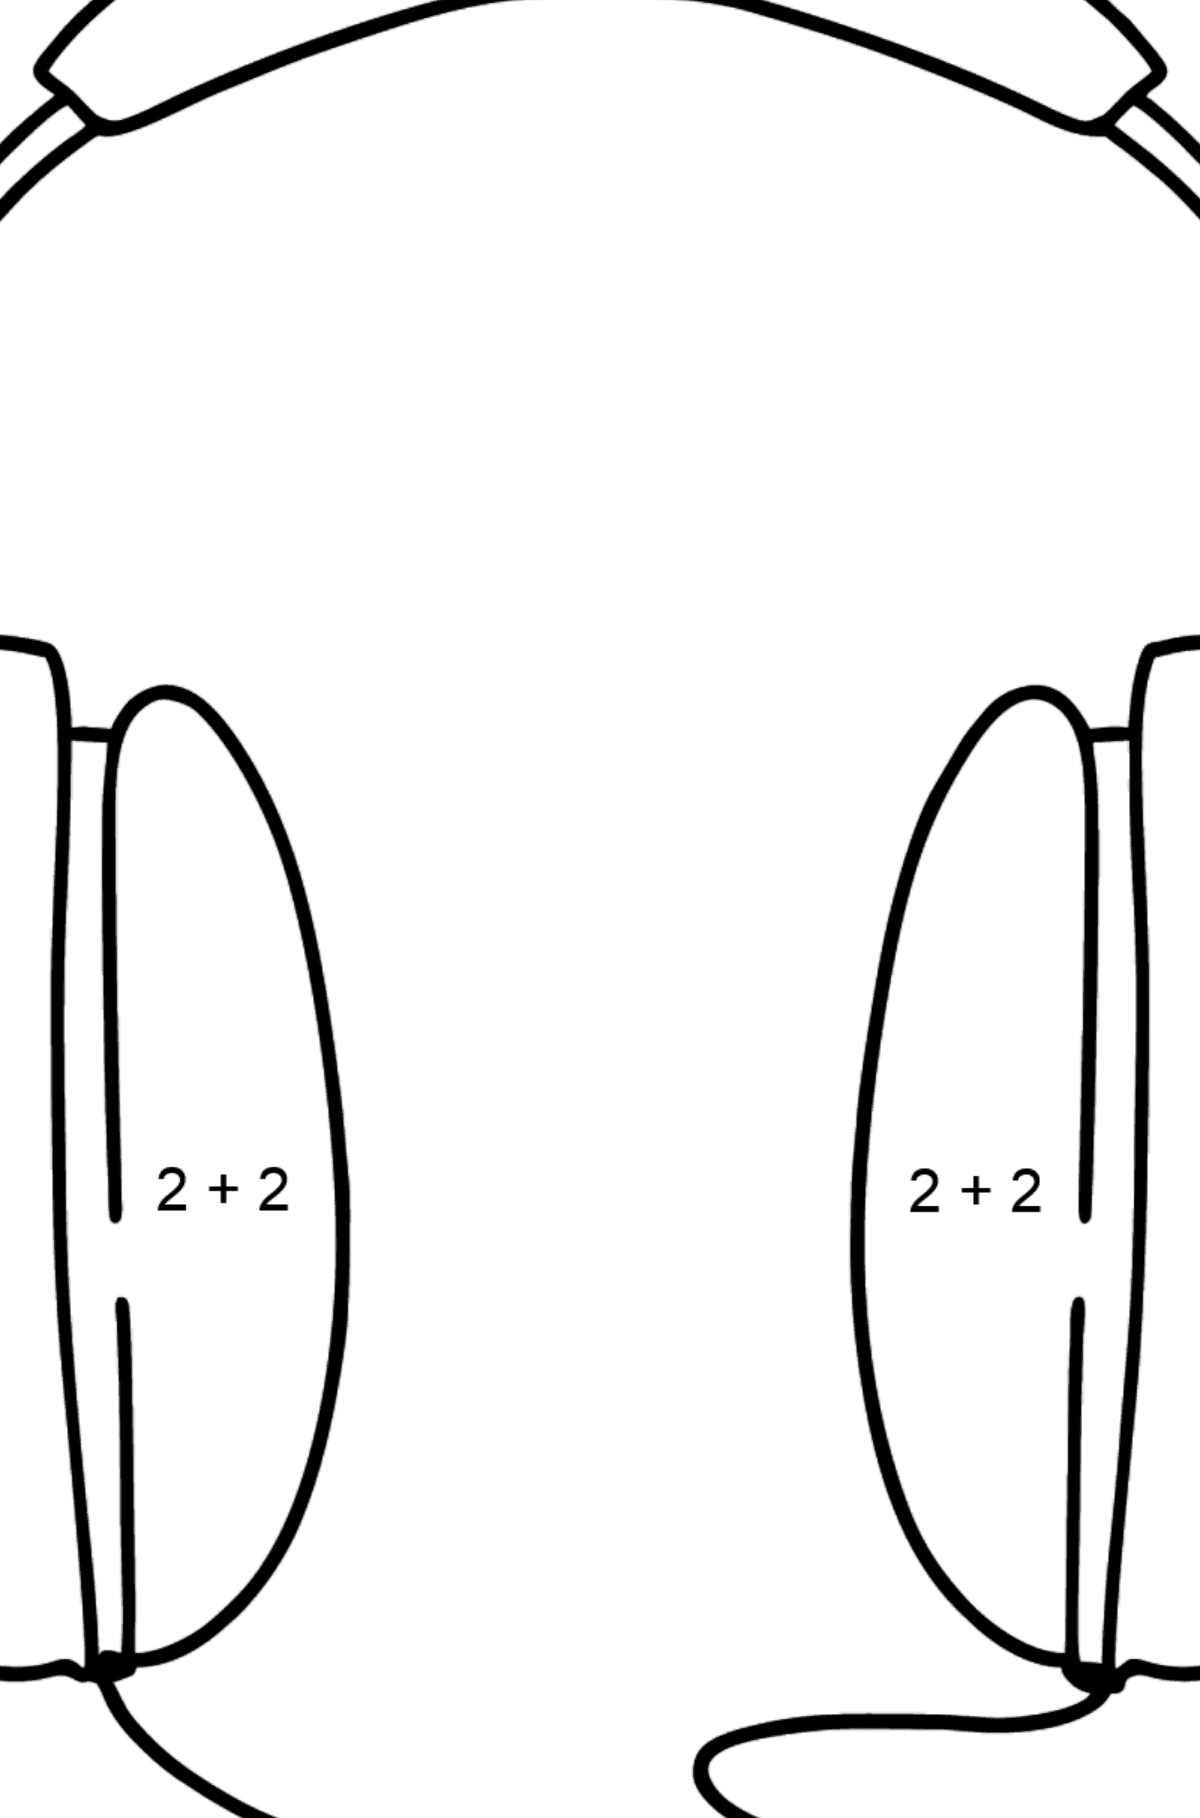 Headphones coloring page - Math Coloring - Addition for Kids